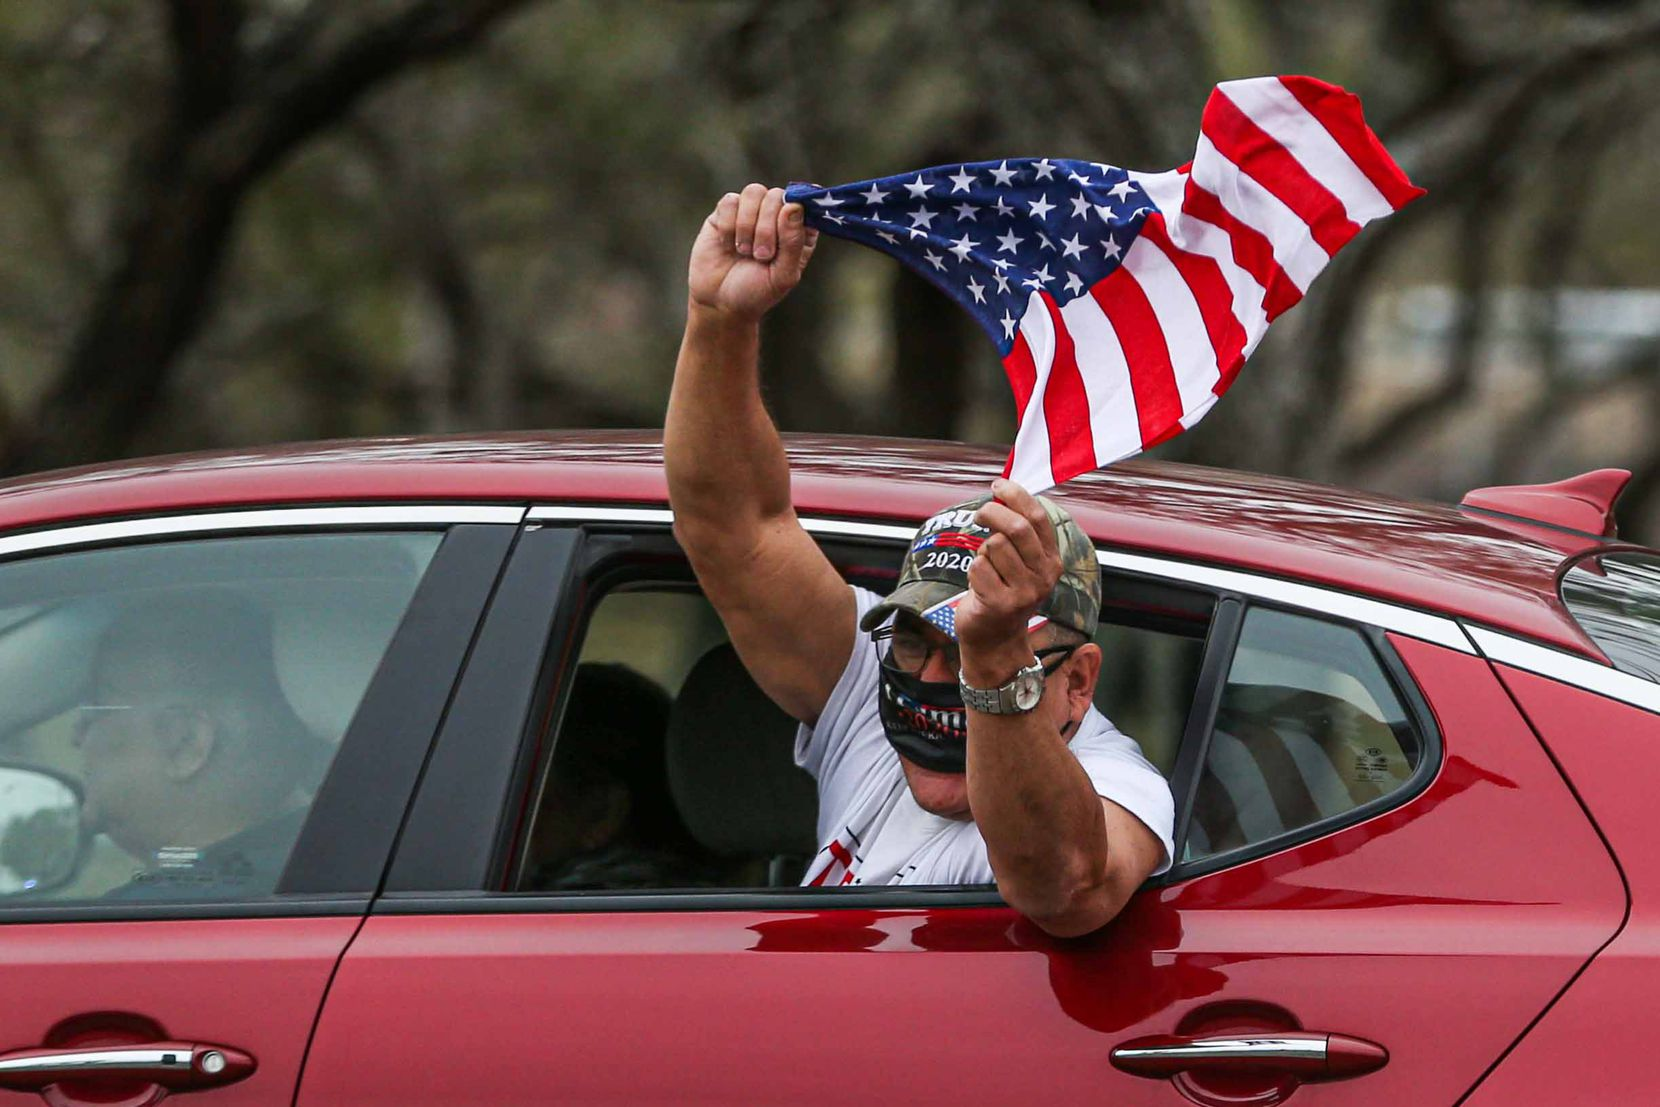 A man shouts from a car window in motion holding an American flag as he passes in front of a rally in support of President Donald Trump that is scheduled to visit part of the wall built under his mandate in McAllen on Tuesday, January 12, 2021.